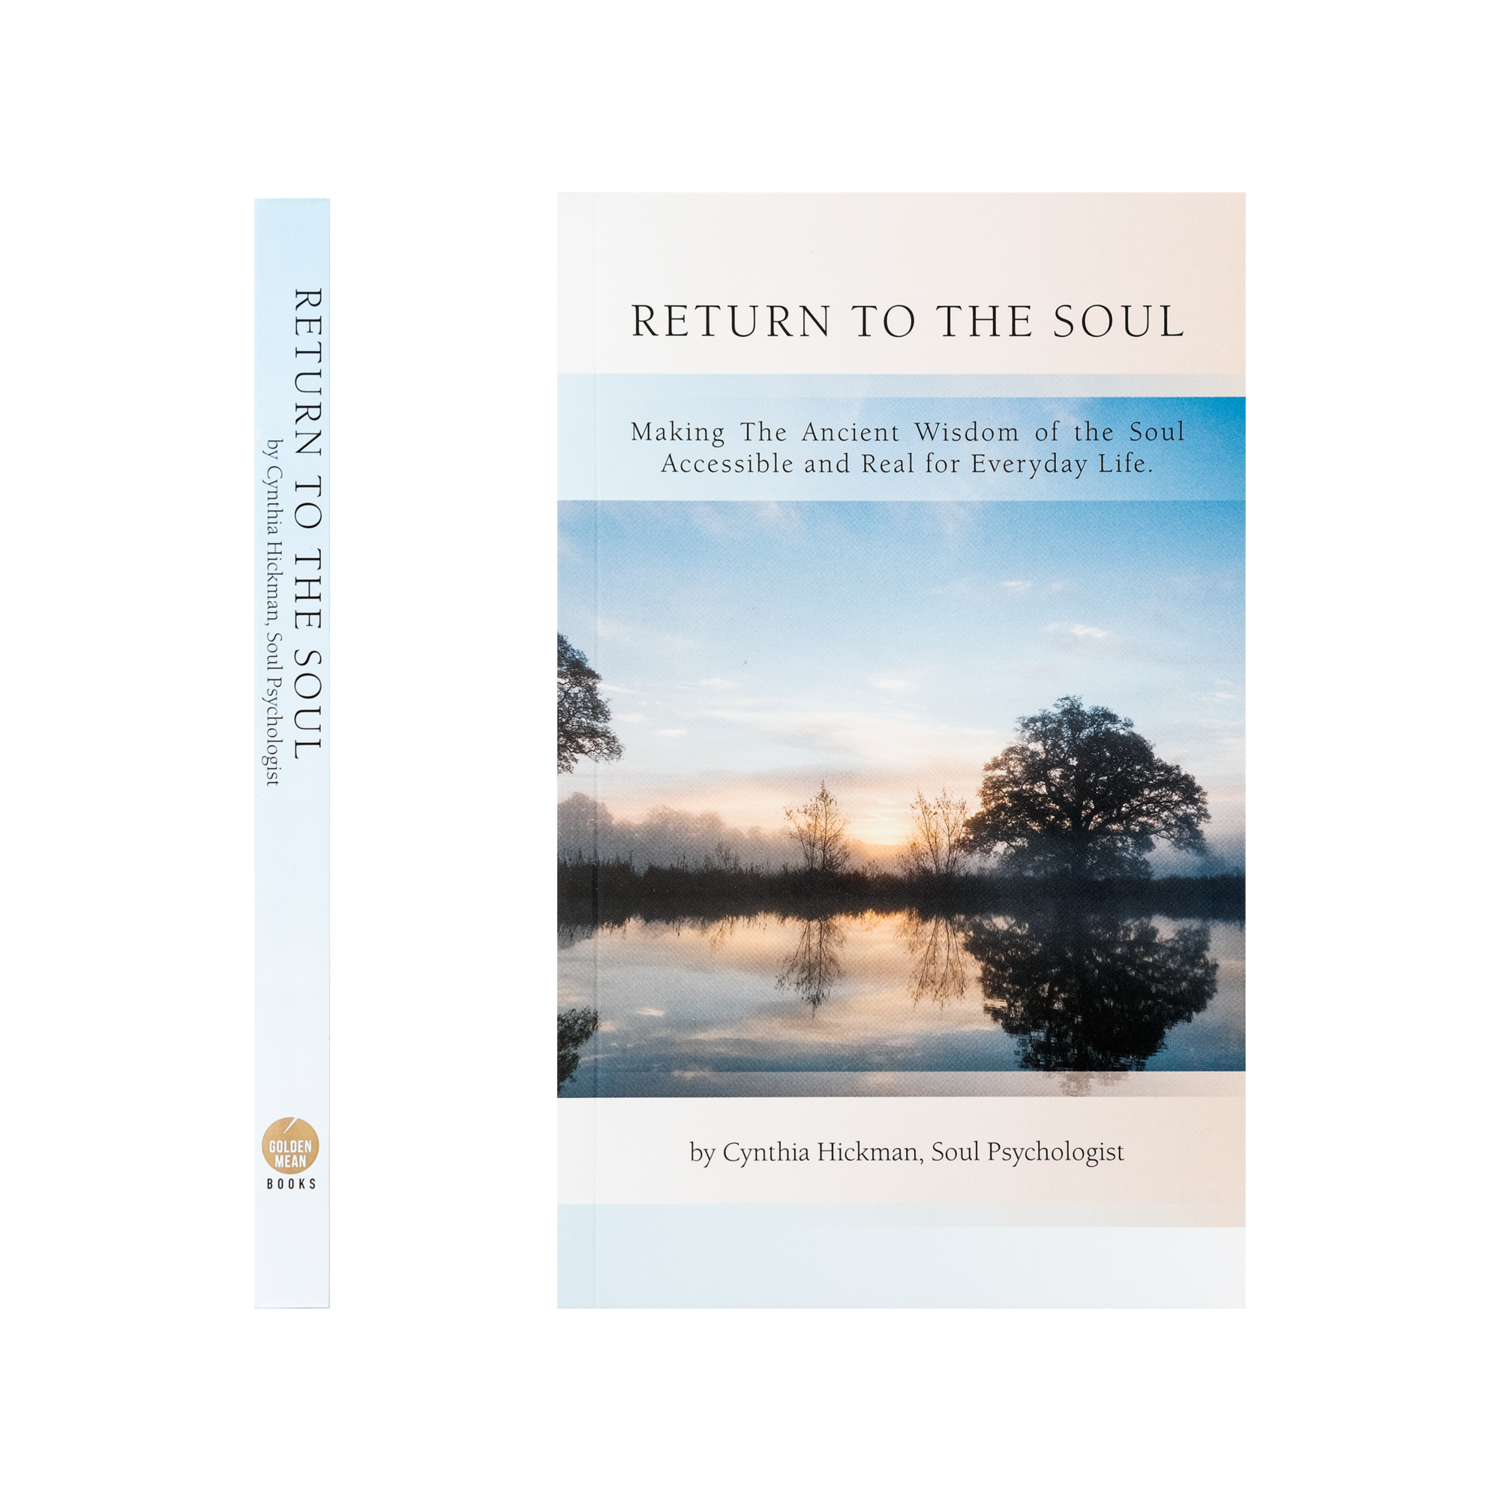 Return to the Soul by Cynthia Hickman, Soul Psychologist